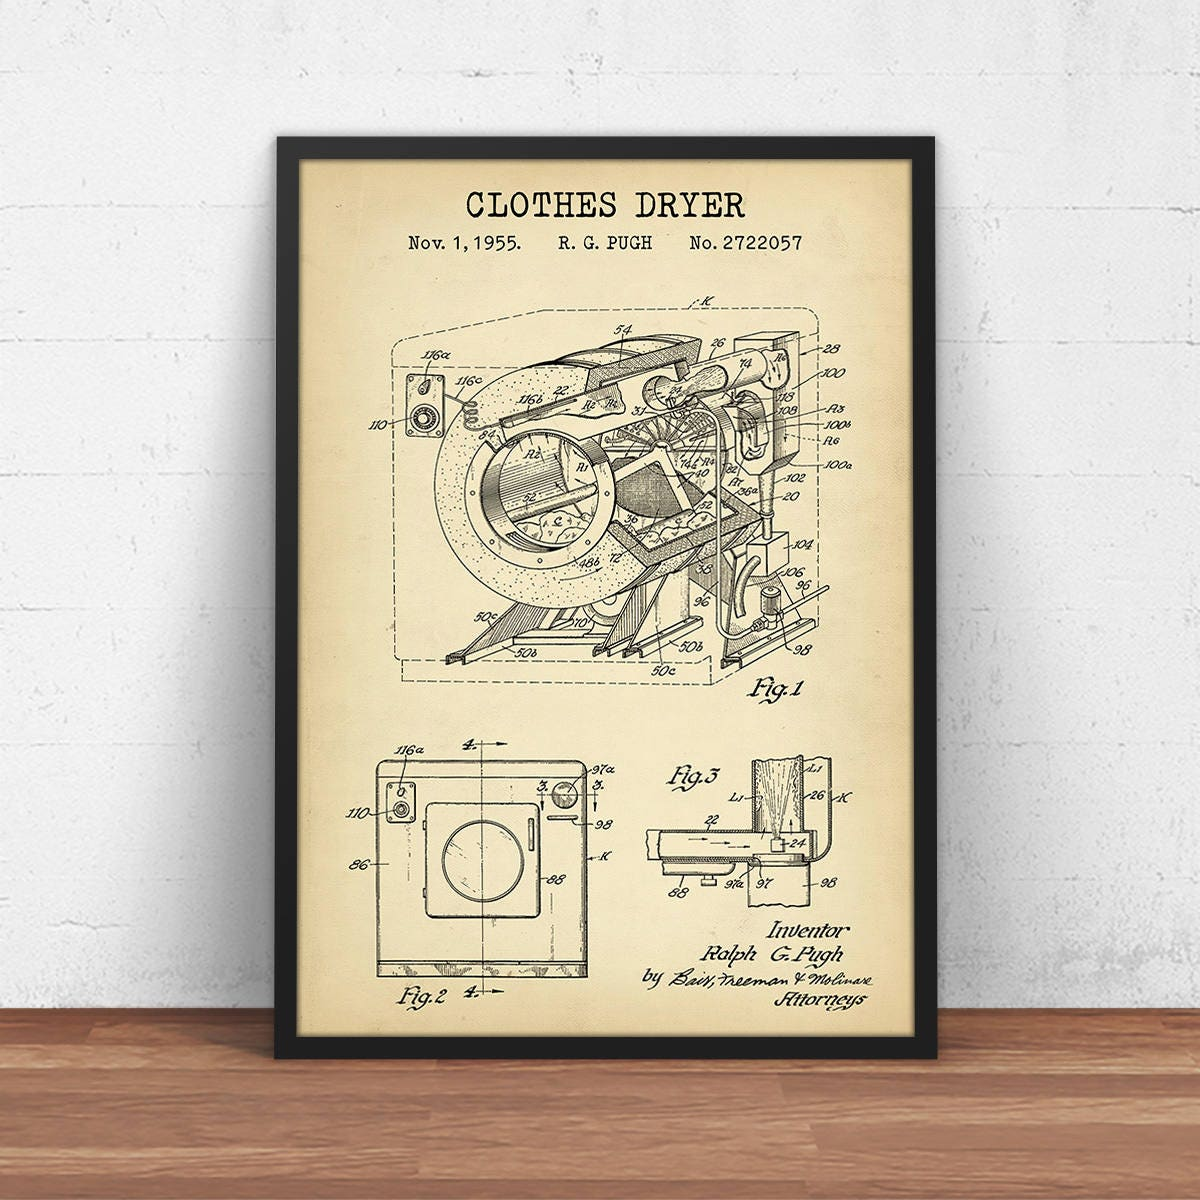 Laundry Wall Art 1950 Clothes Dryer Canvas Patent Print Laundry Room Decor